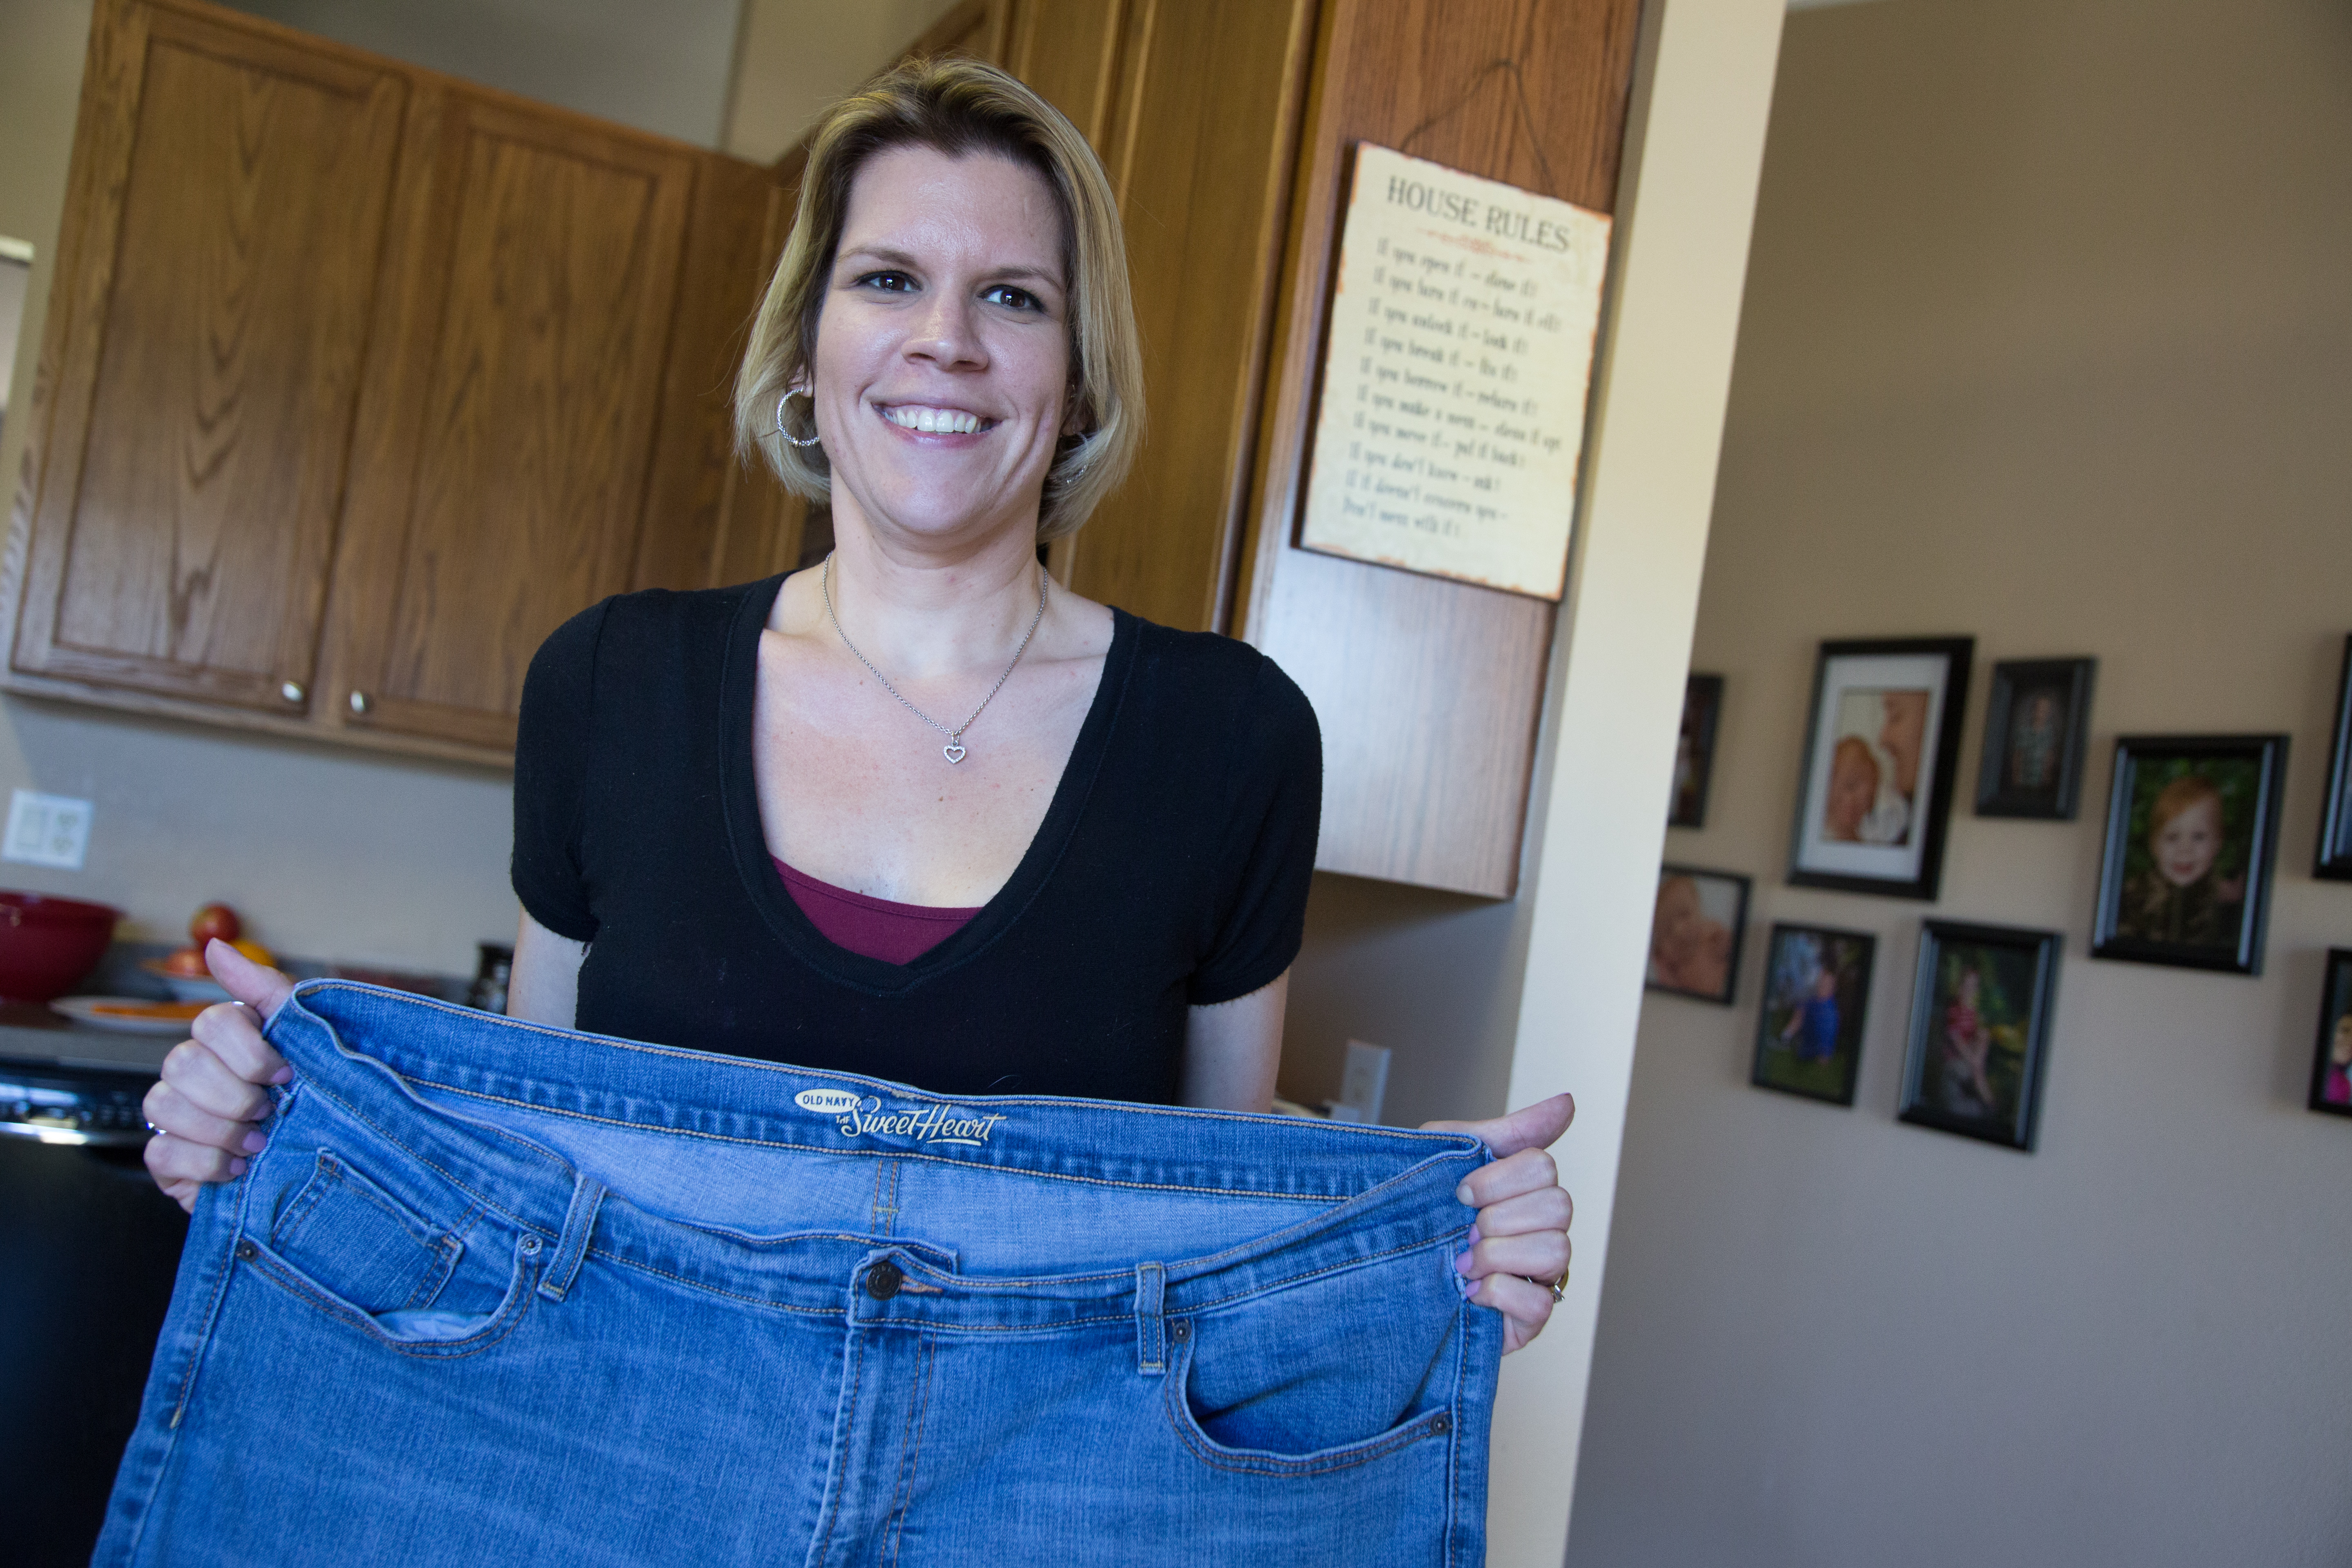 674446ce08 Study Supports Bariatric Surgery to Treat Type 2 Diabetes in Obese ...